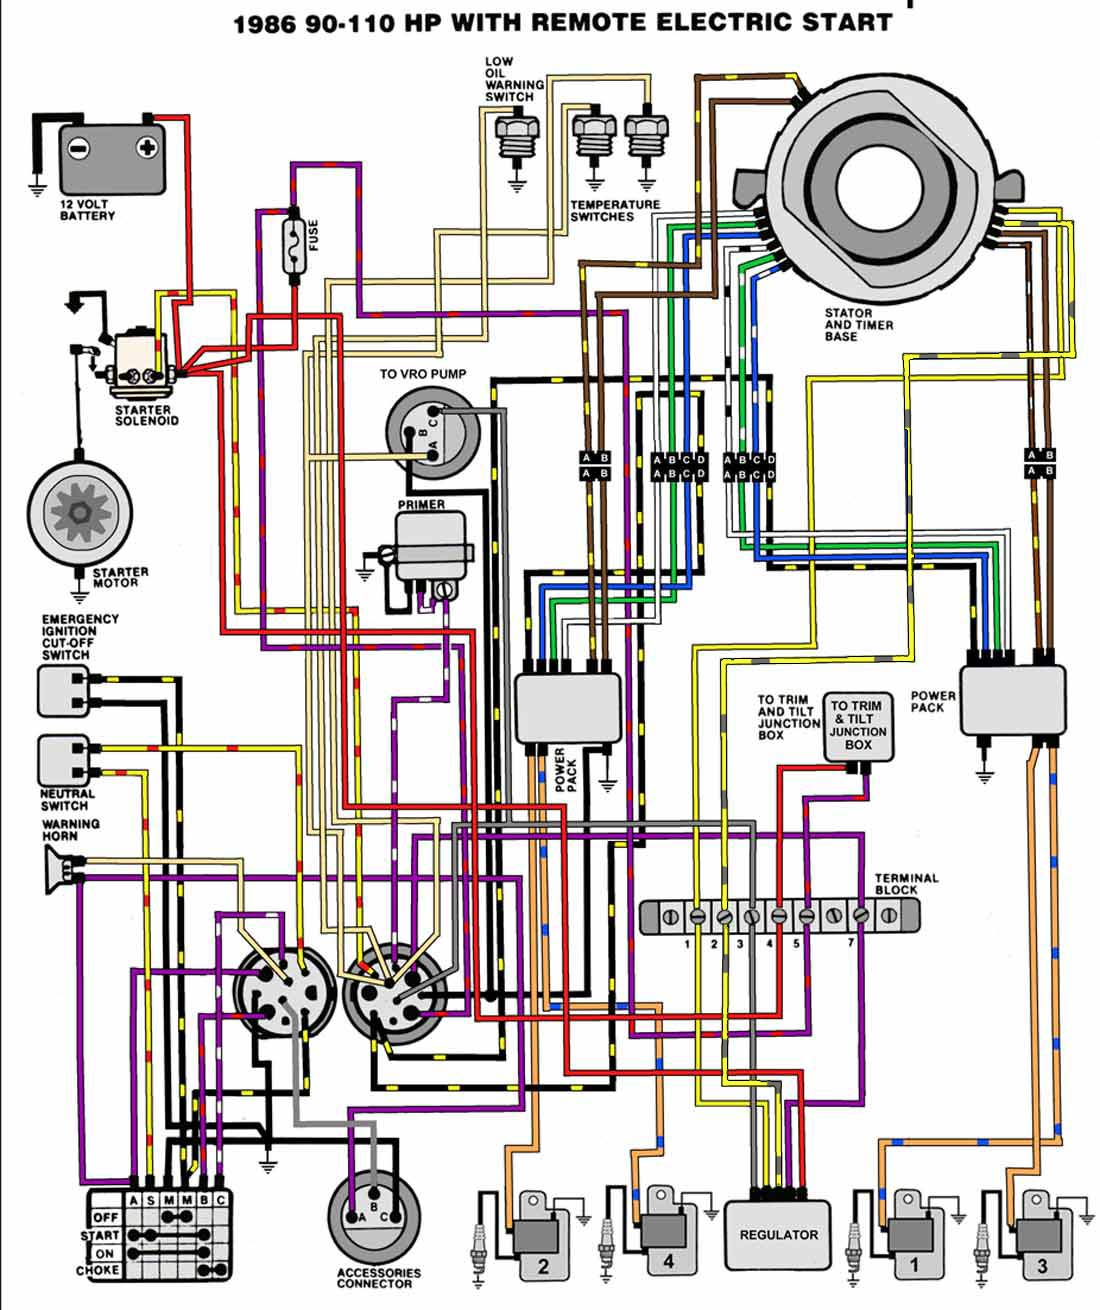 1986_90_115 yamaha outboard ignition wiring diagram readingrat net yamaha outboard oil tank wiring diagram at alyssarenee.co